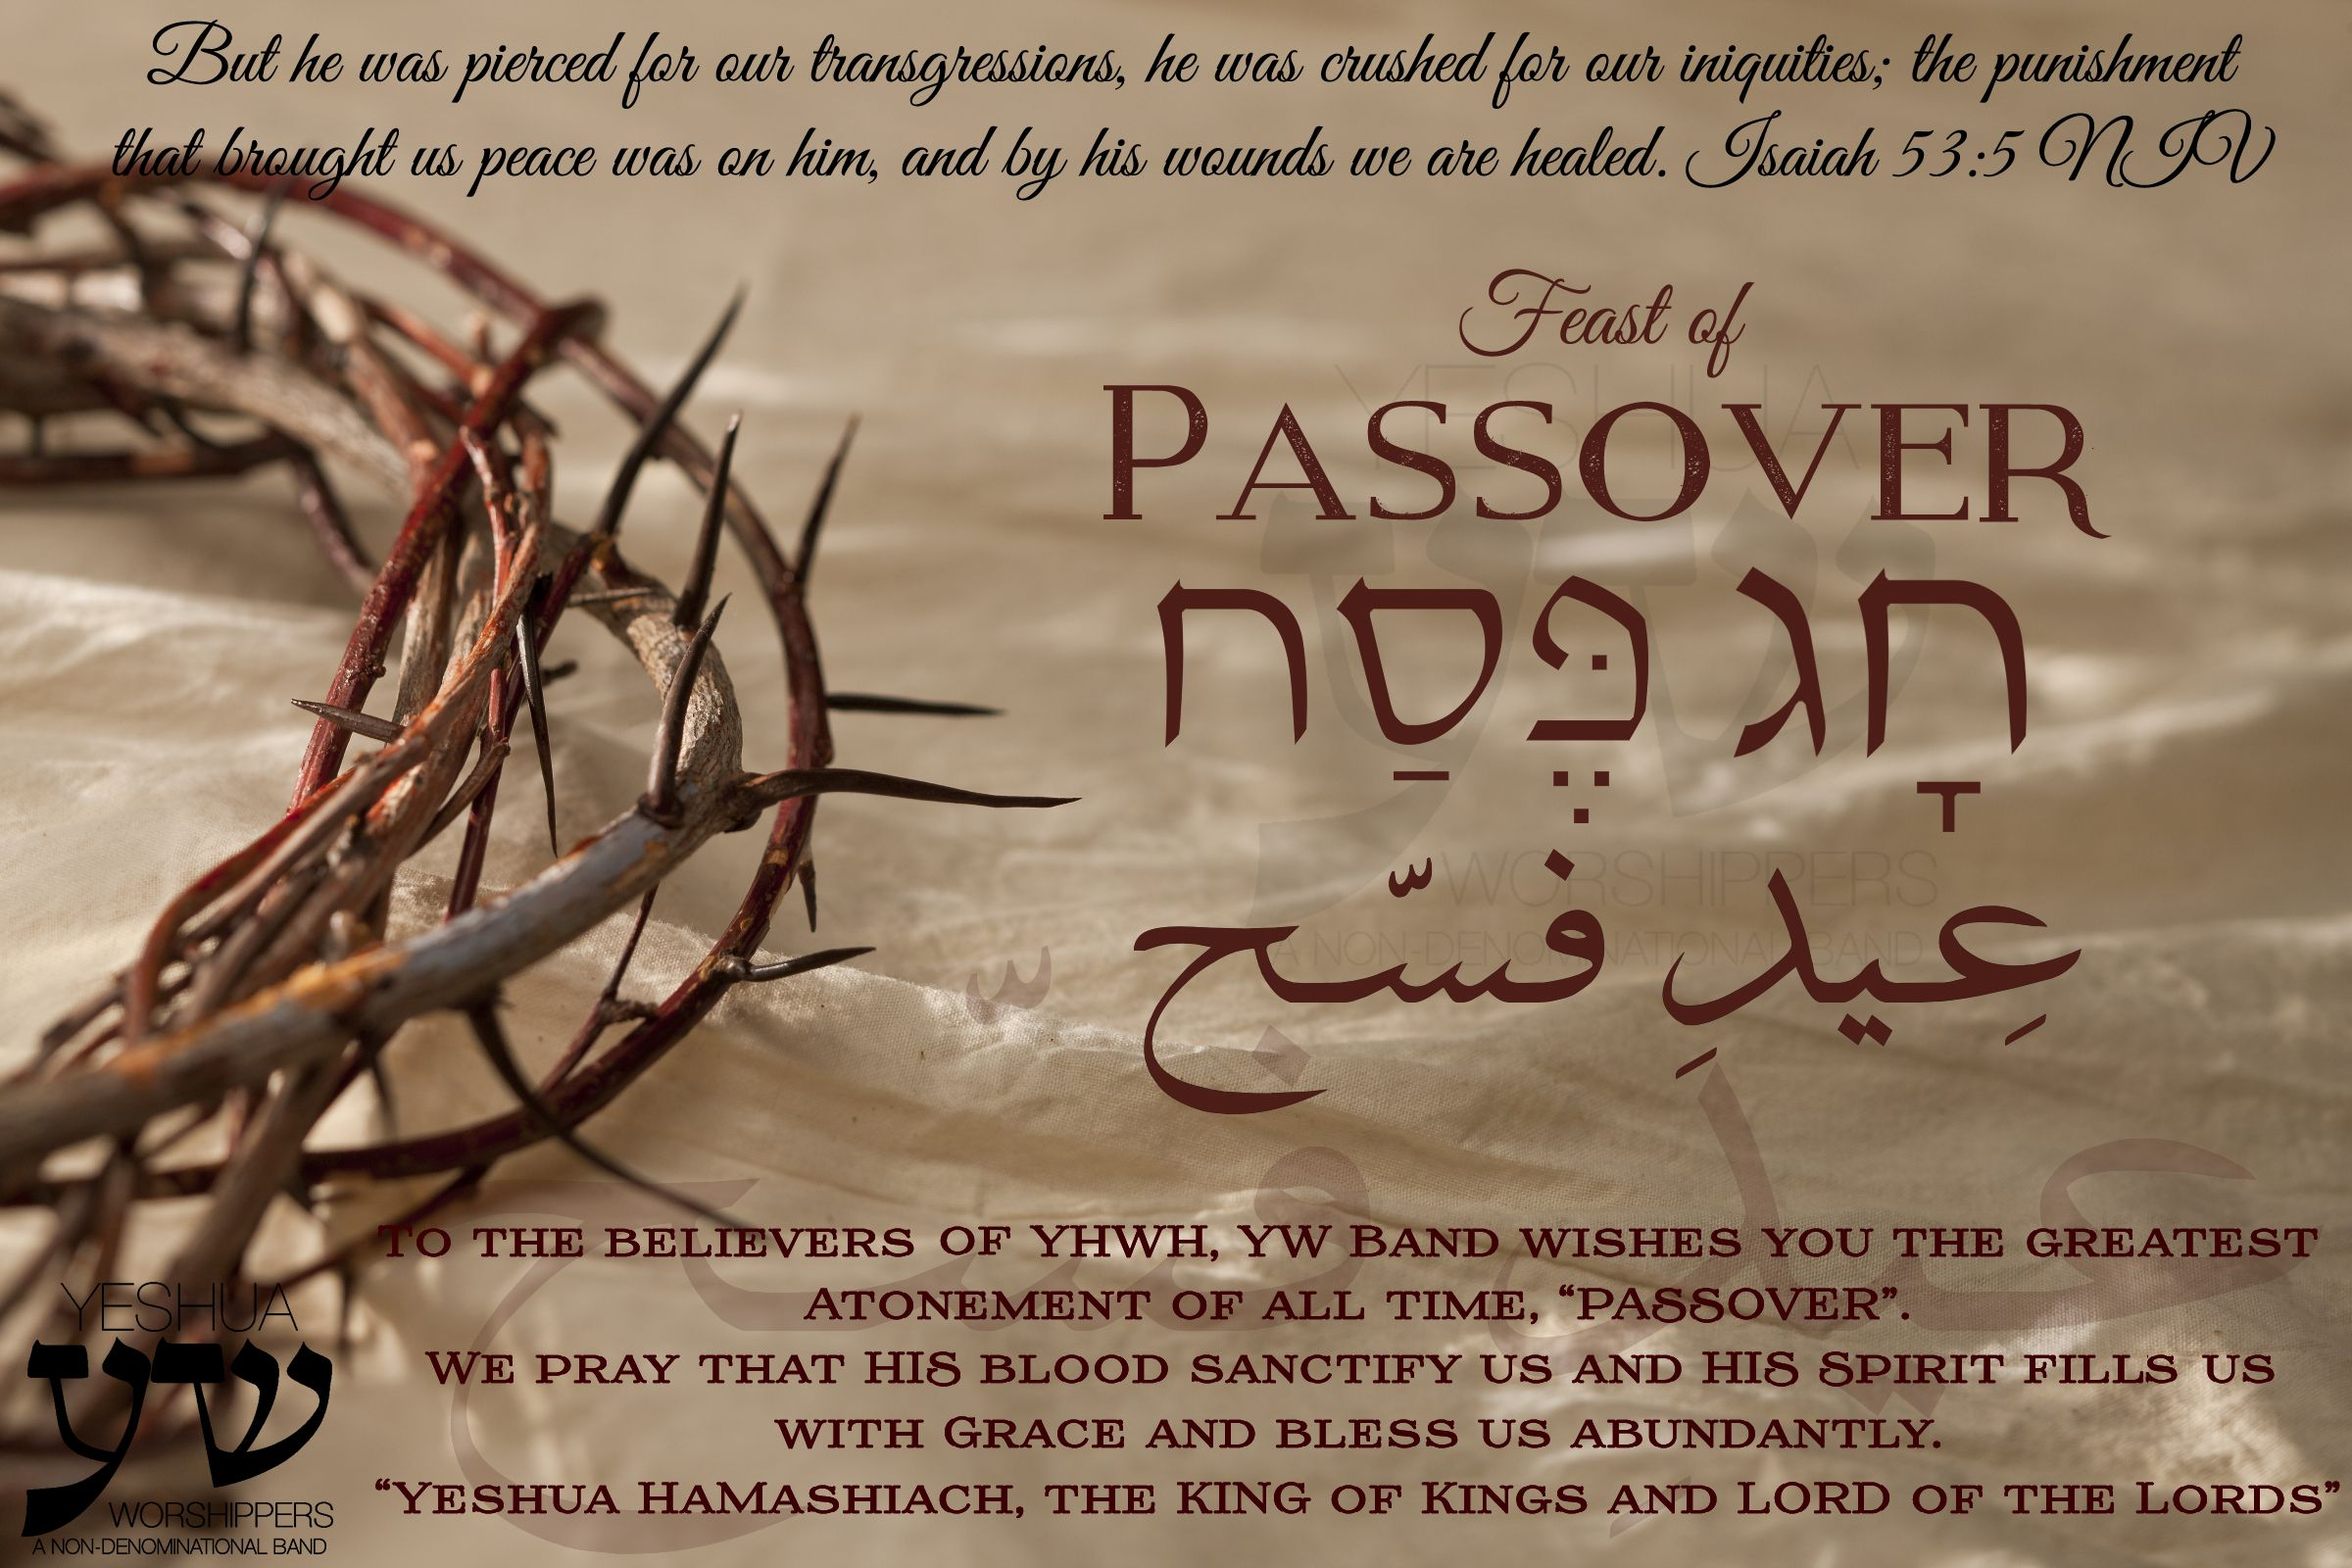 Passover - Pesach